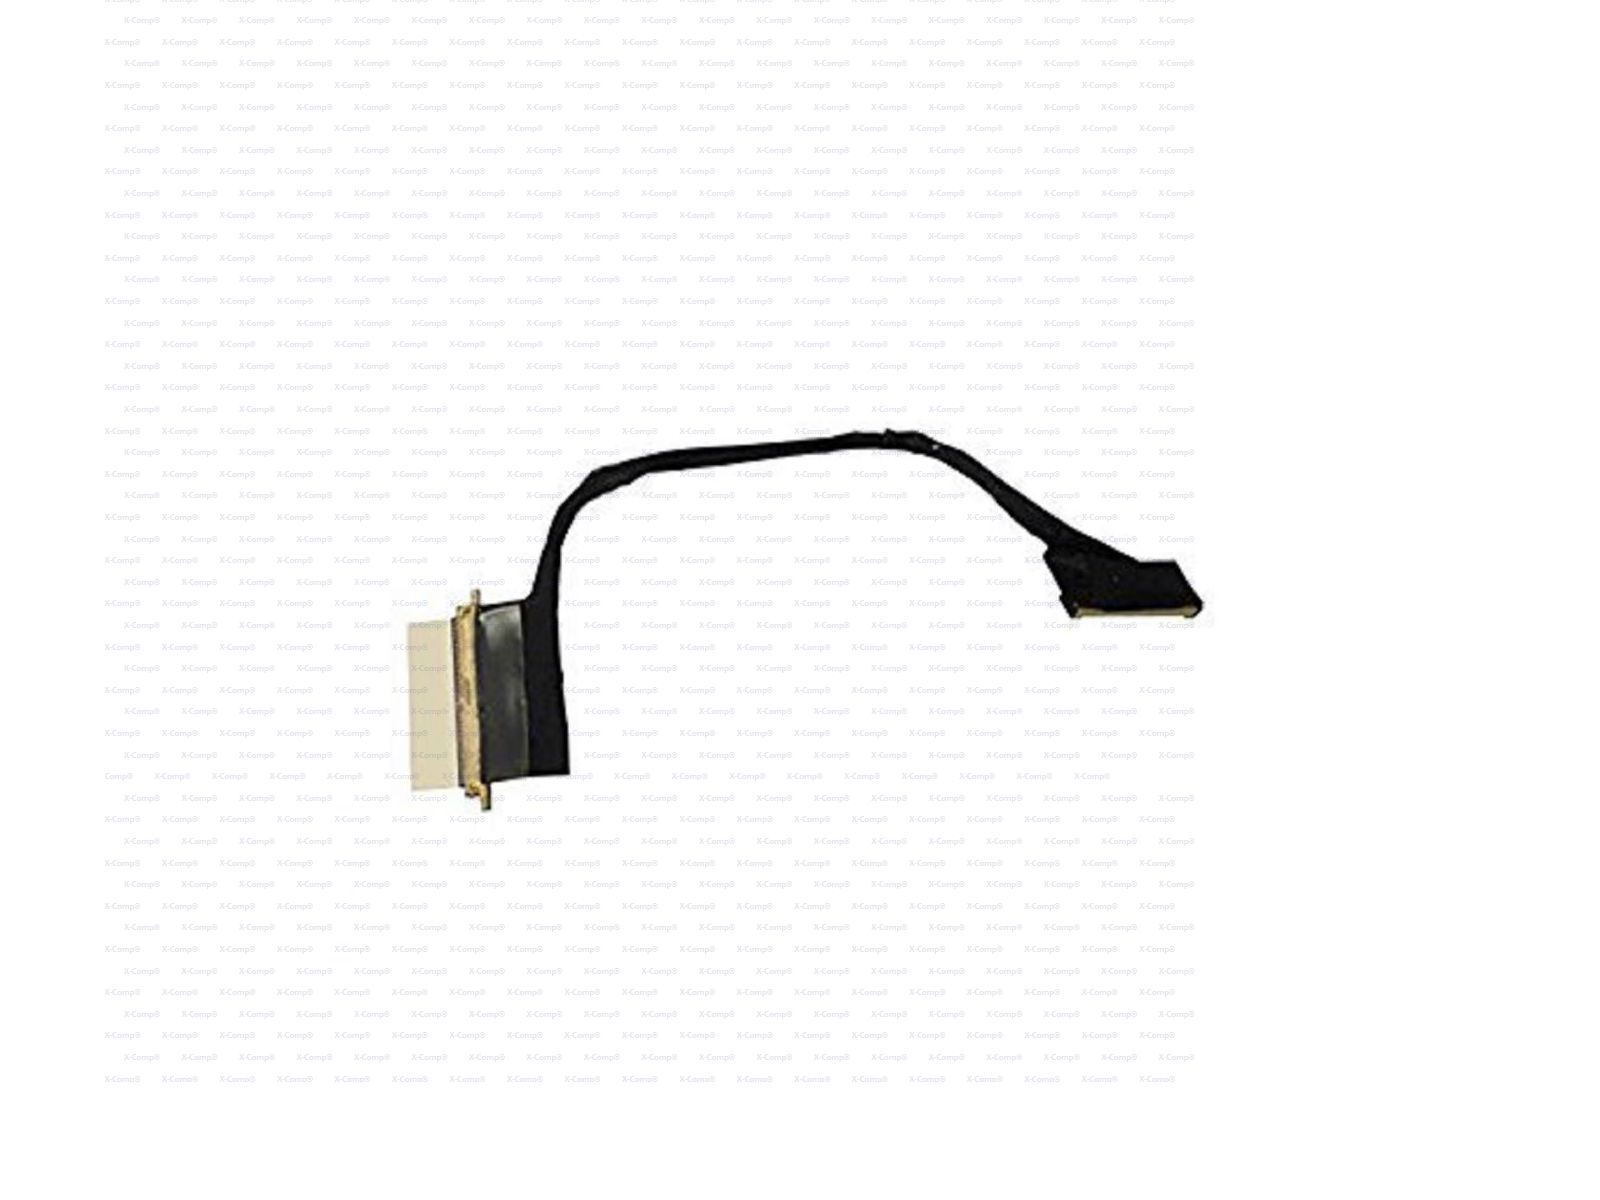 Display LCD Video Kabel GDM900002324 für Toshiba Satellite Z930-001